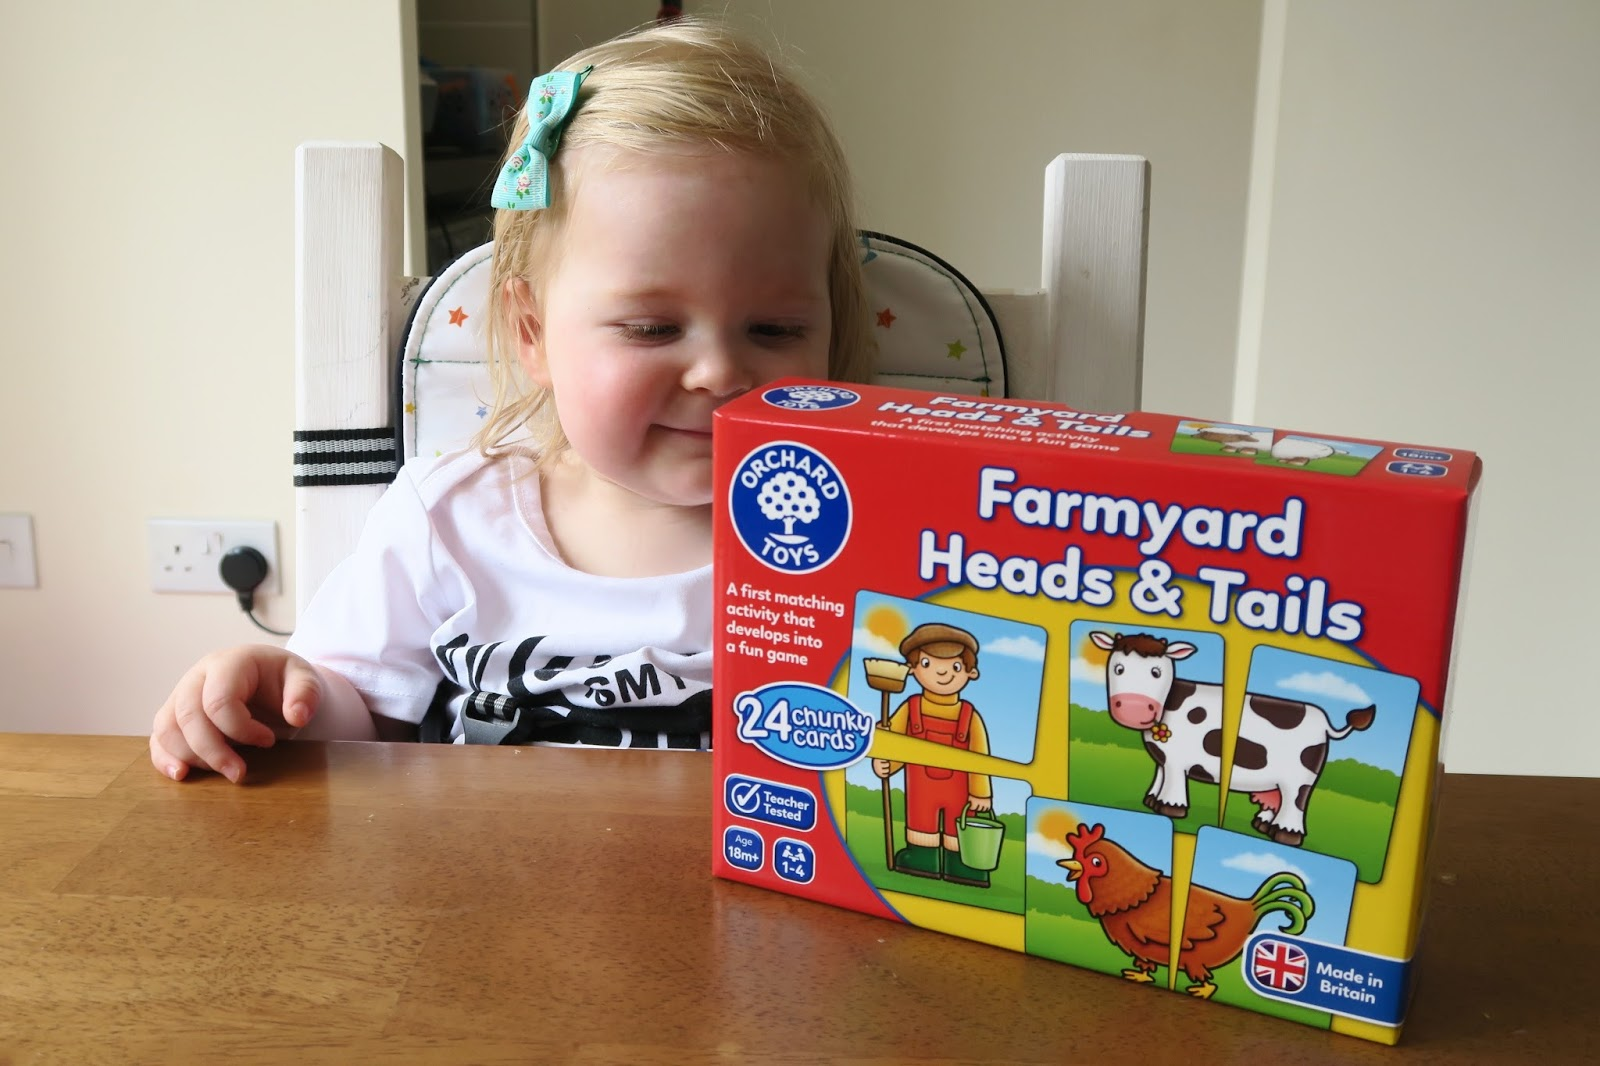 ORCHARD TOYS FARMYARD HEADS & TAILS REVIEW